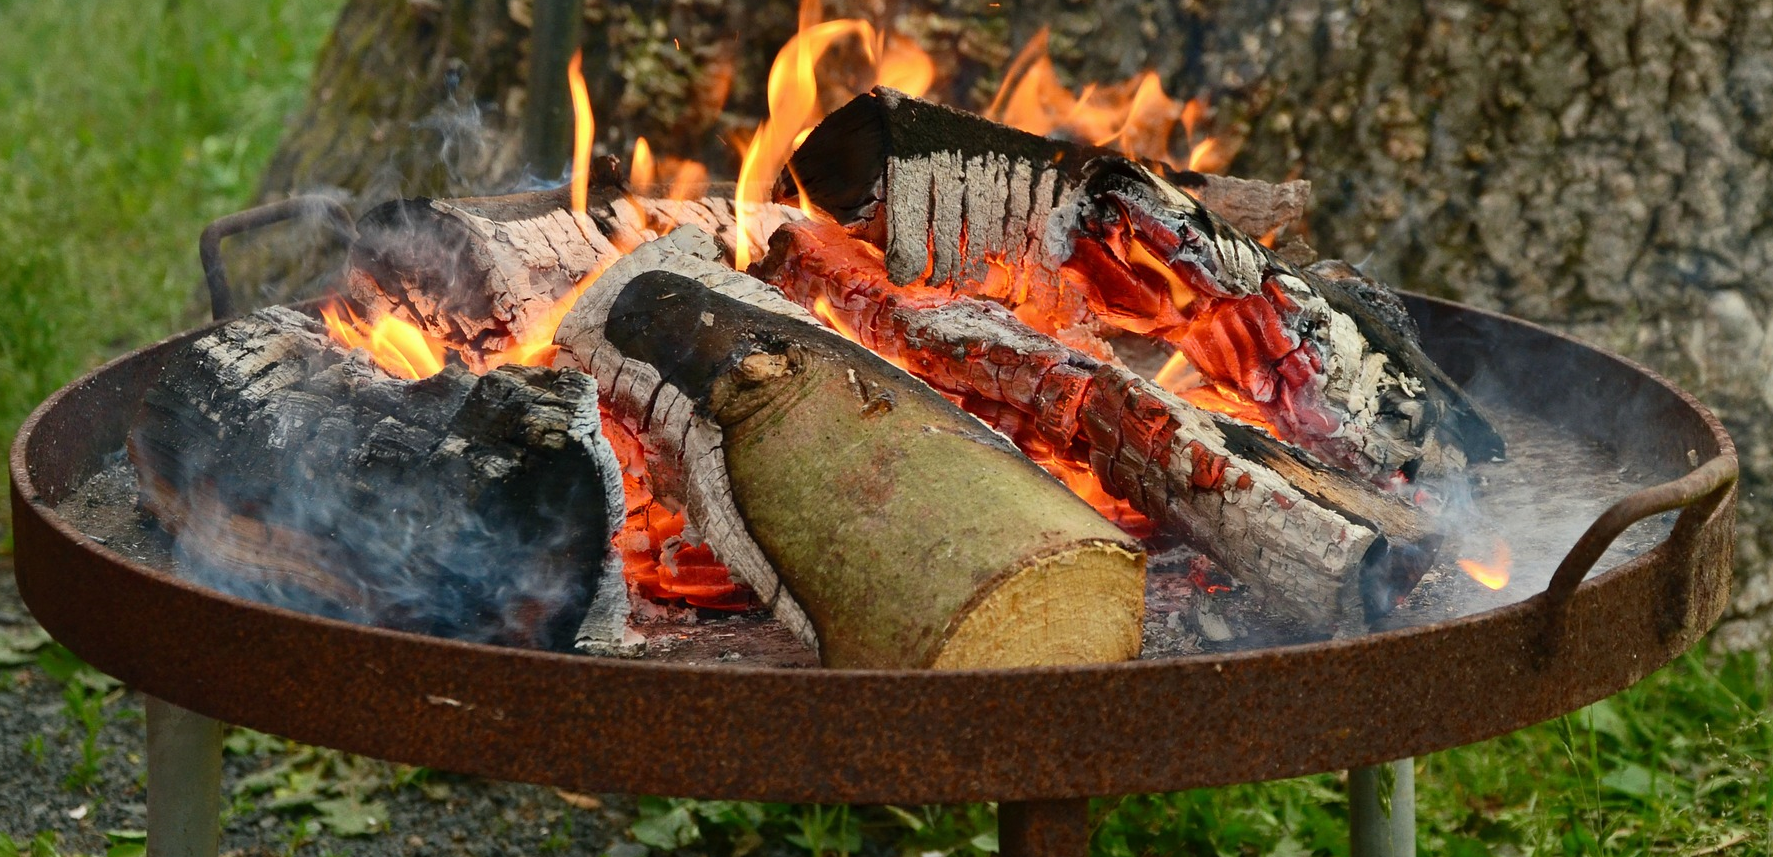 fire-cooking-outdoor